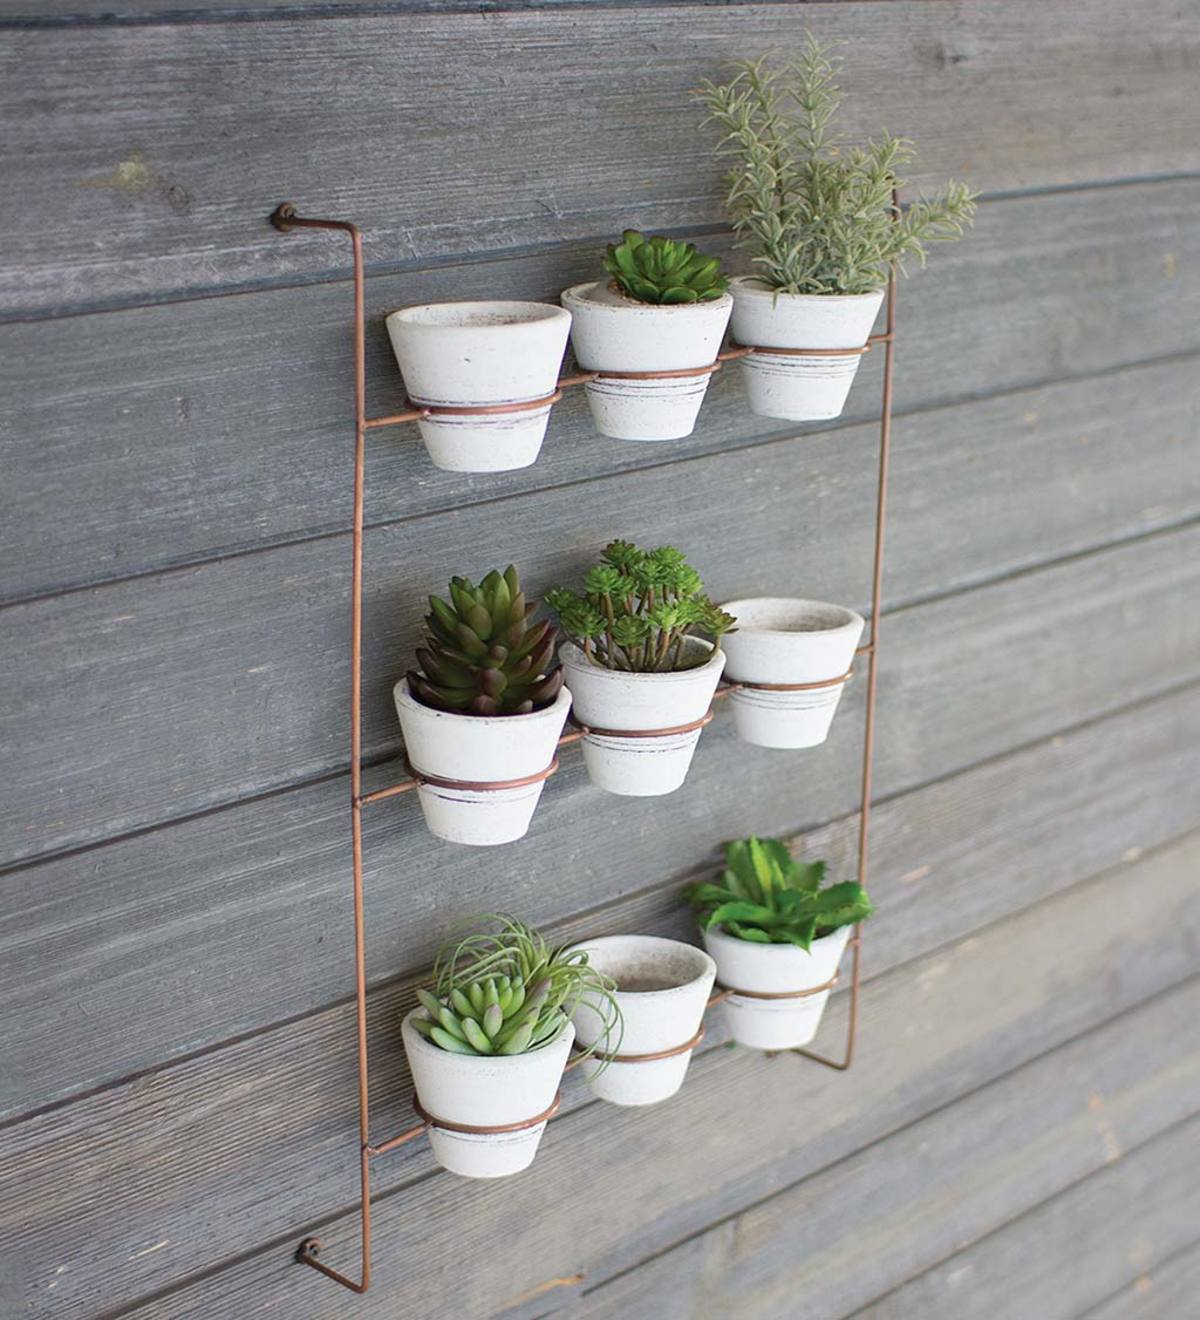 White Wash Clay Pots On Copper Finish Wall Rack Set of 9